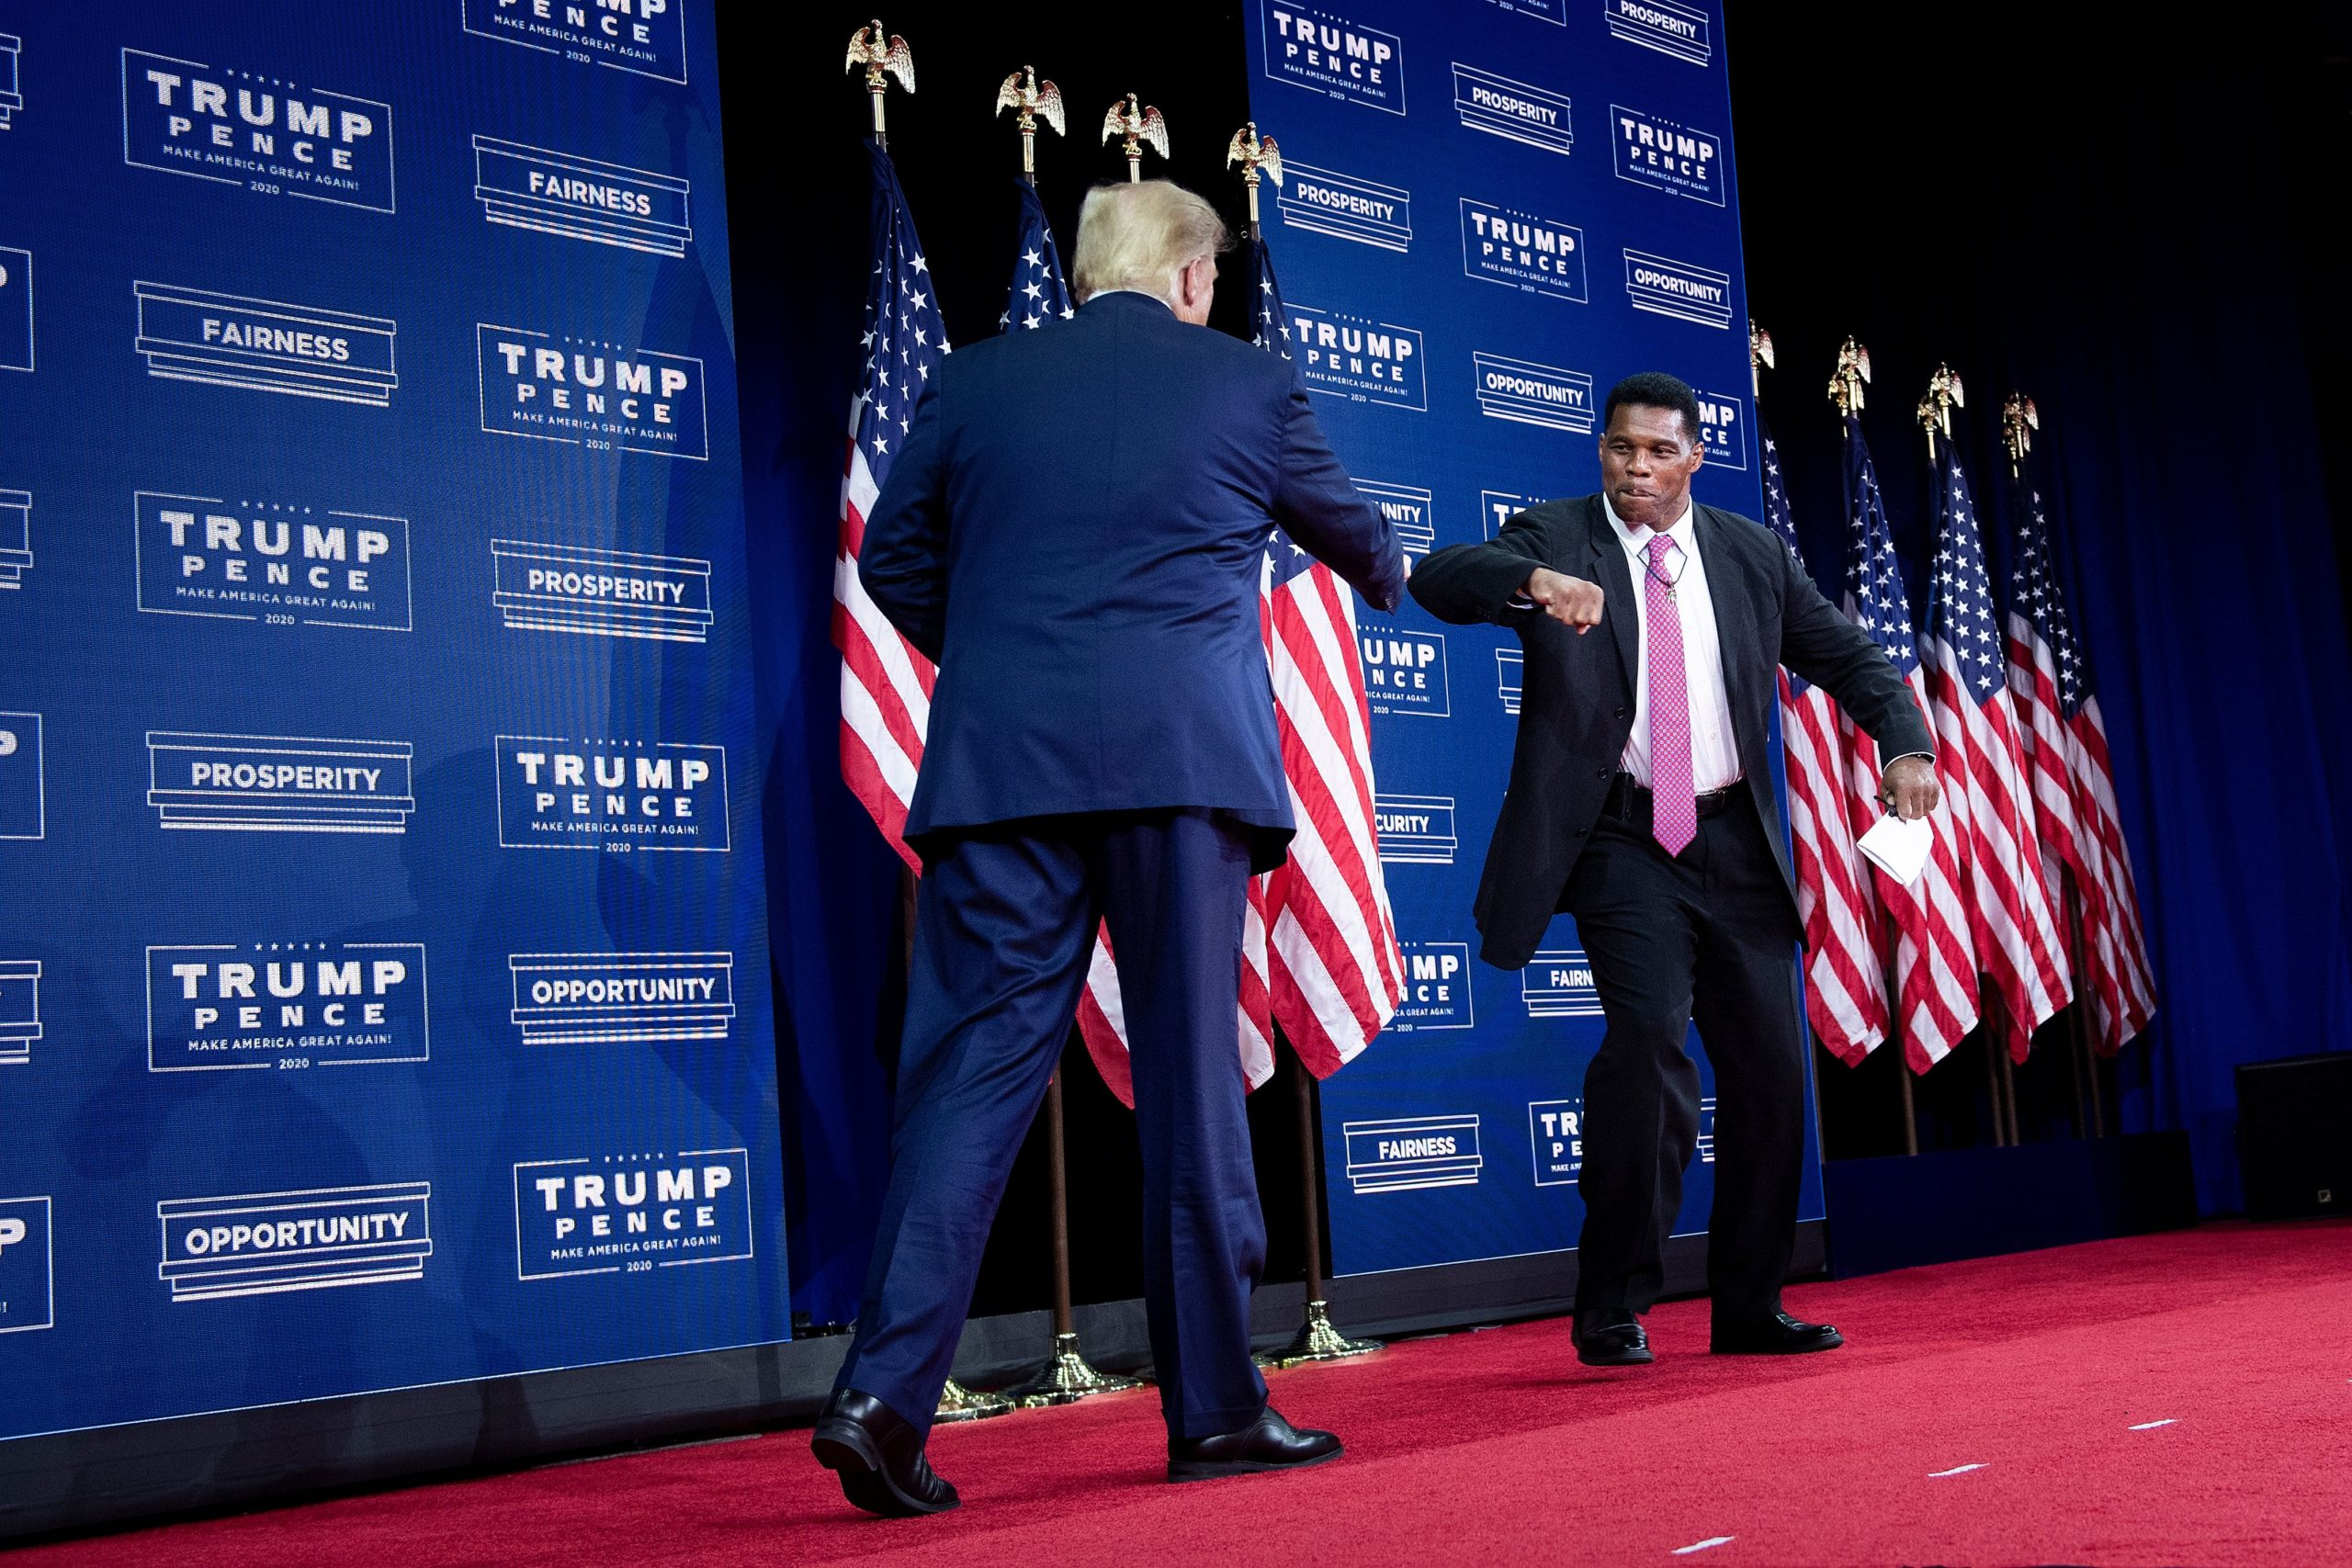 US President Donald Trump is greeted by NFL hall of fame member Herschel Walker during an event for black supporters at the Cobb Galleria Centre September 25, 2020, in Atlanta, Georgia. (Photo by BRENDAN SMIALOWSKI/AFP via Getty Images)